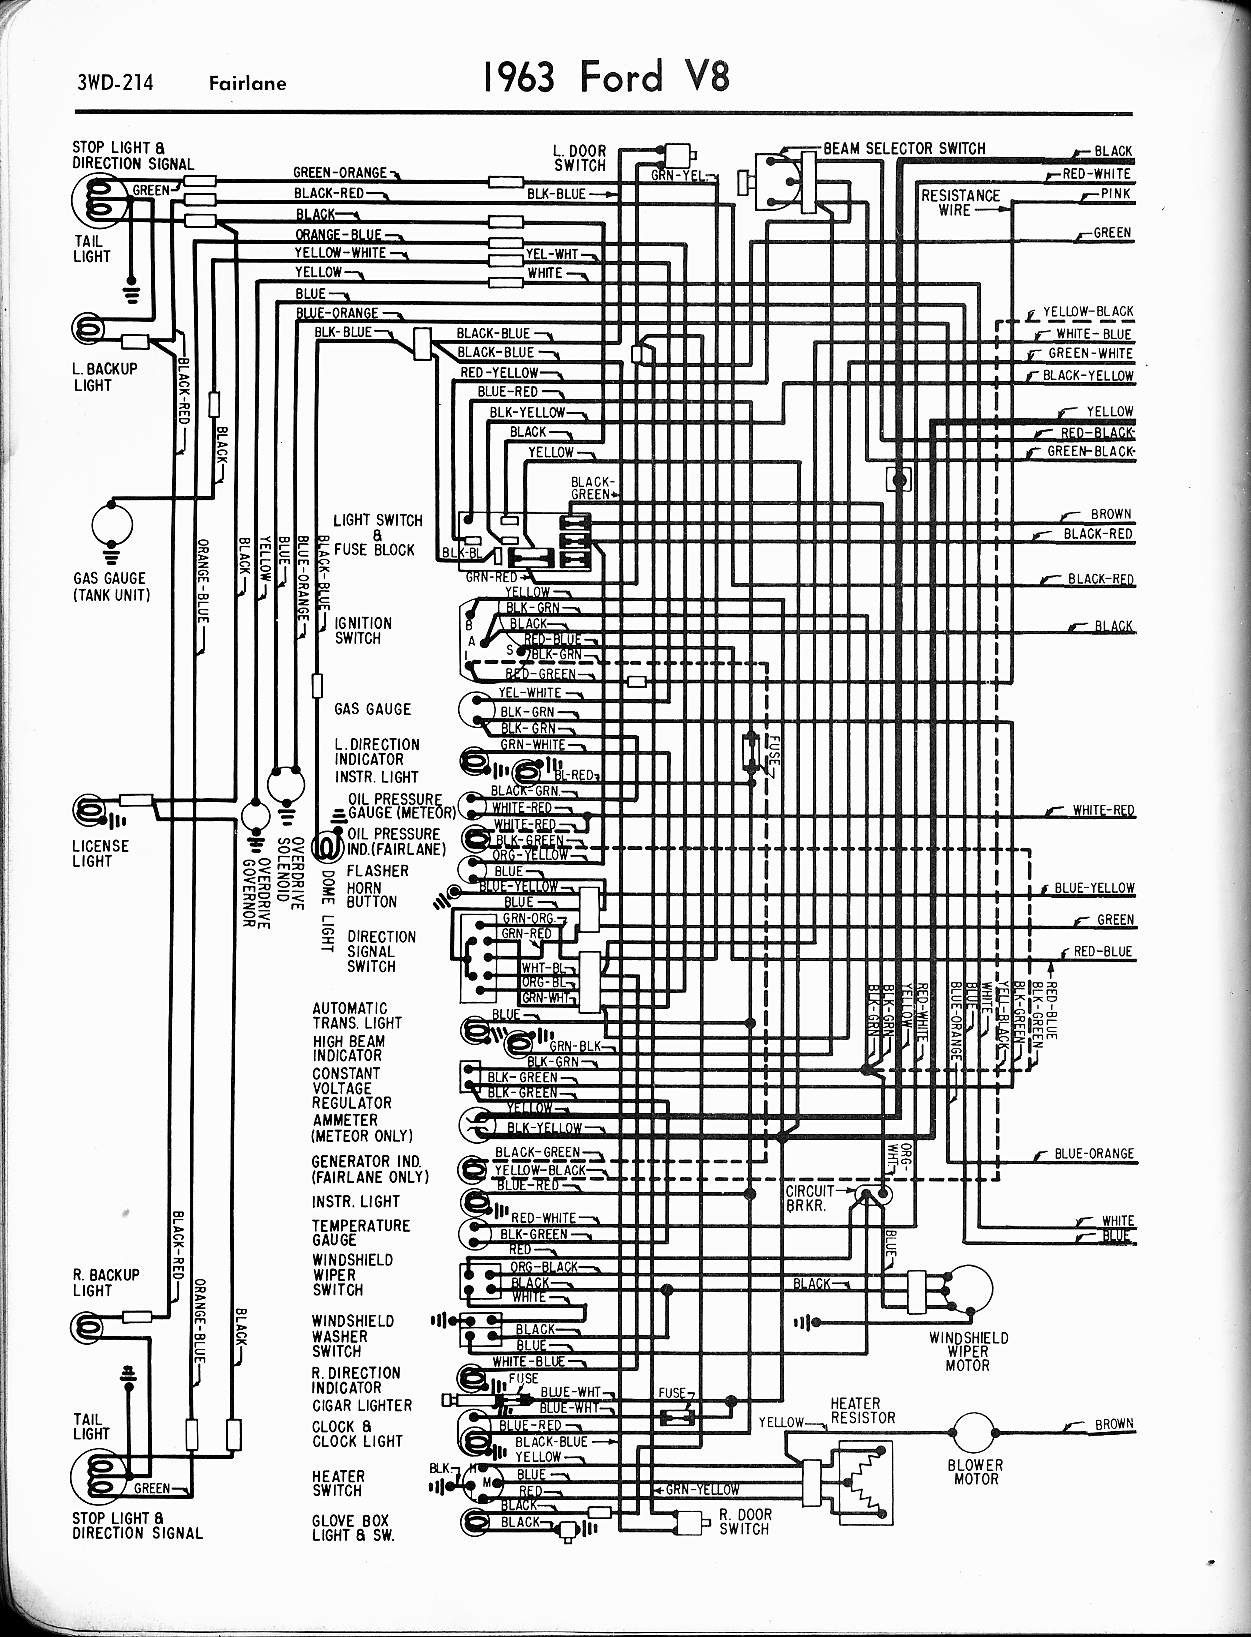 57 65 Ford Wiring Diagrams 1957 Starter Solenoid Diagram 1963 V8 Fairlane Left